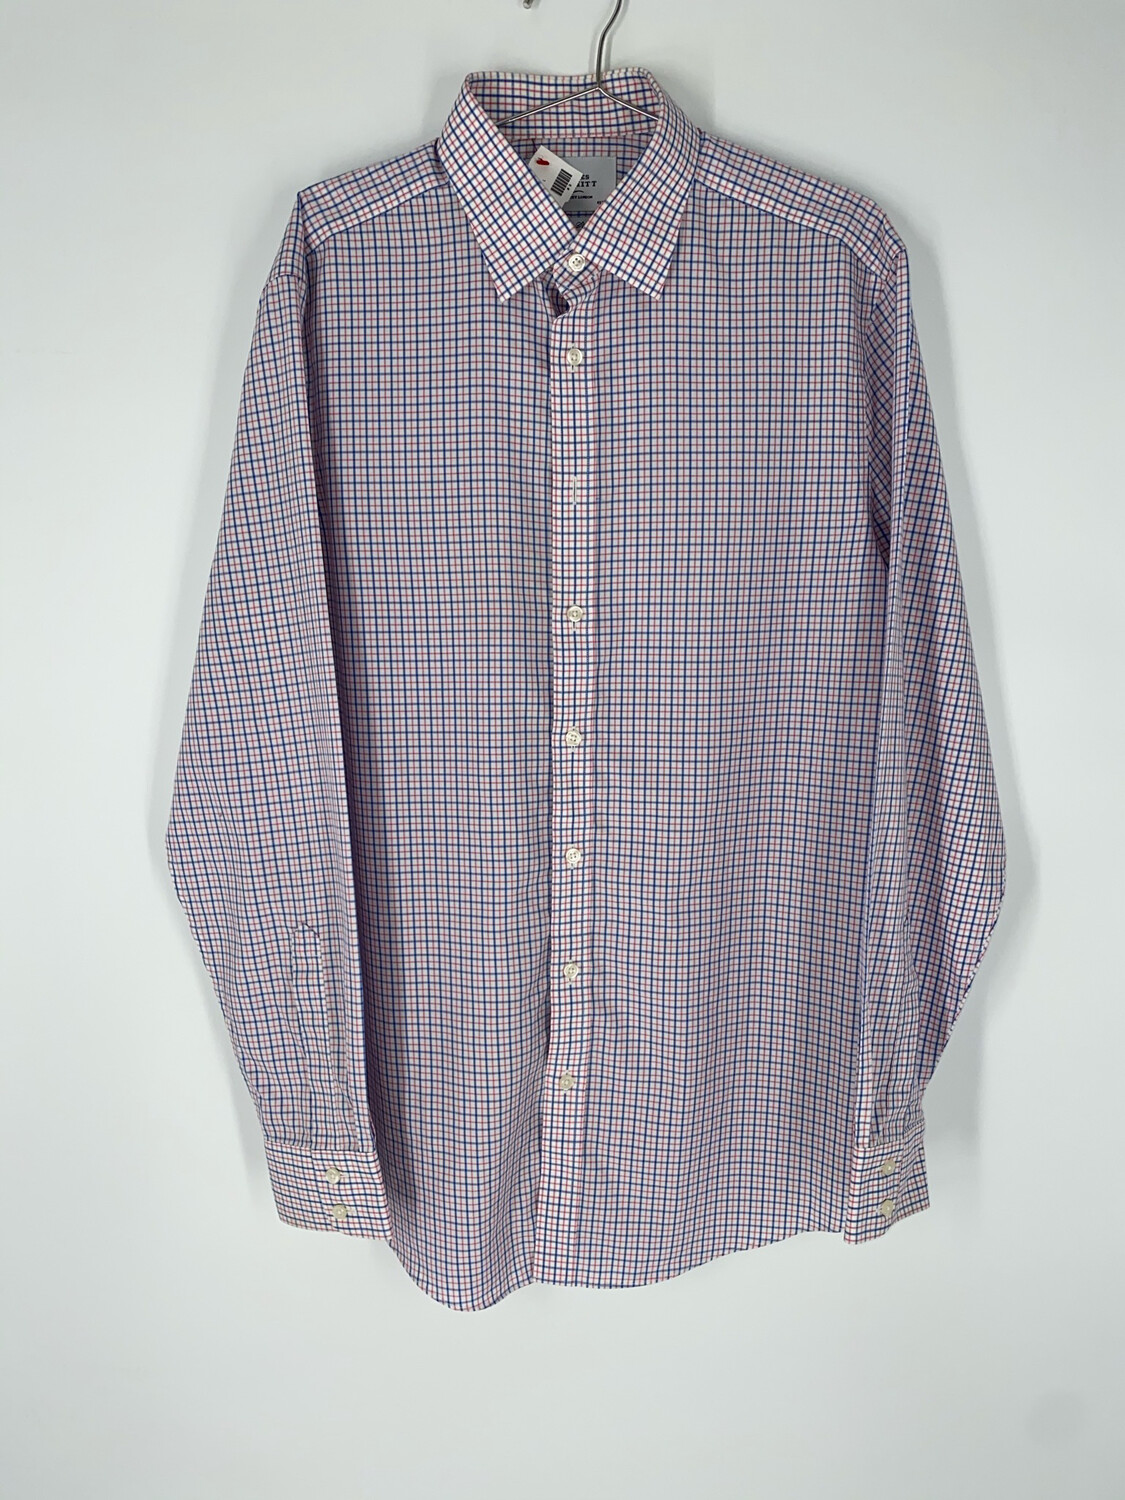 Charles Tyrwhitt Button Up Size Large